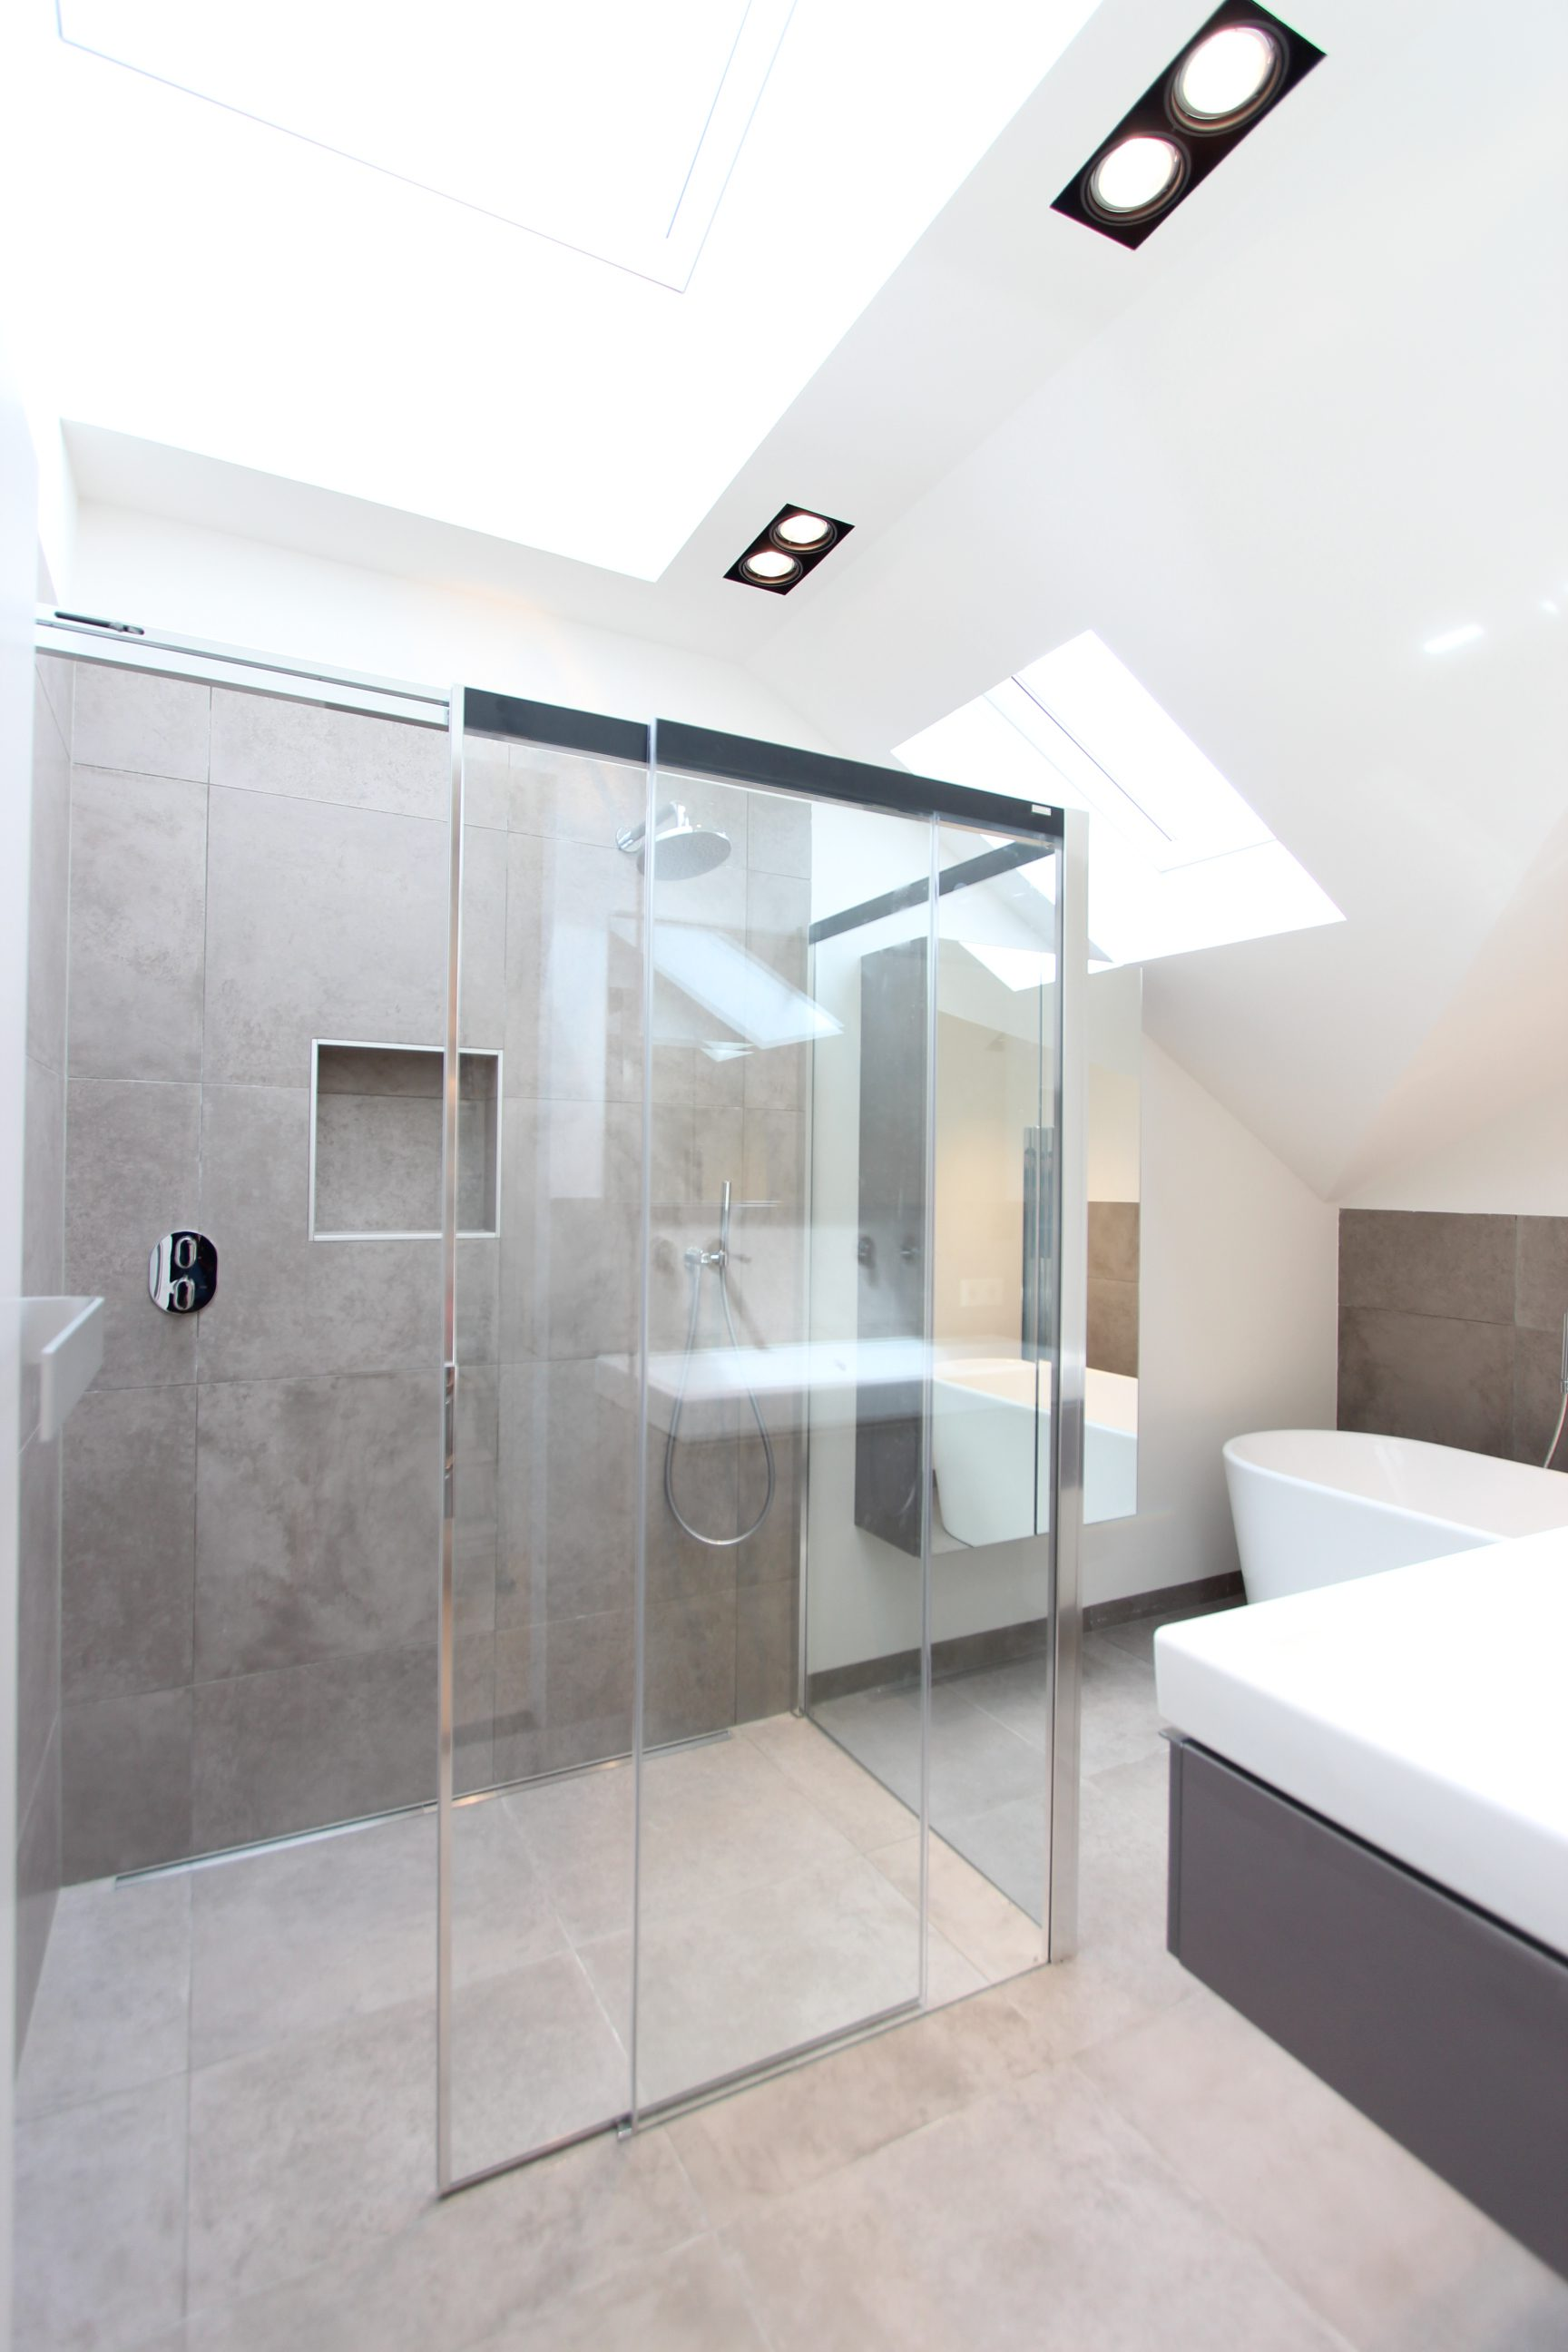 A-residence_bathroom renovation